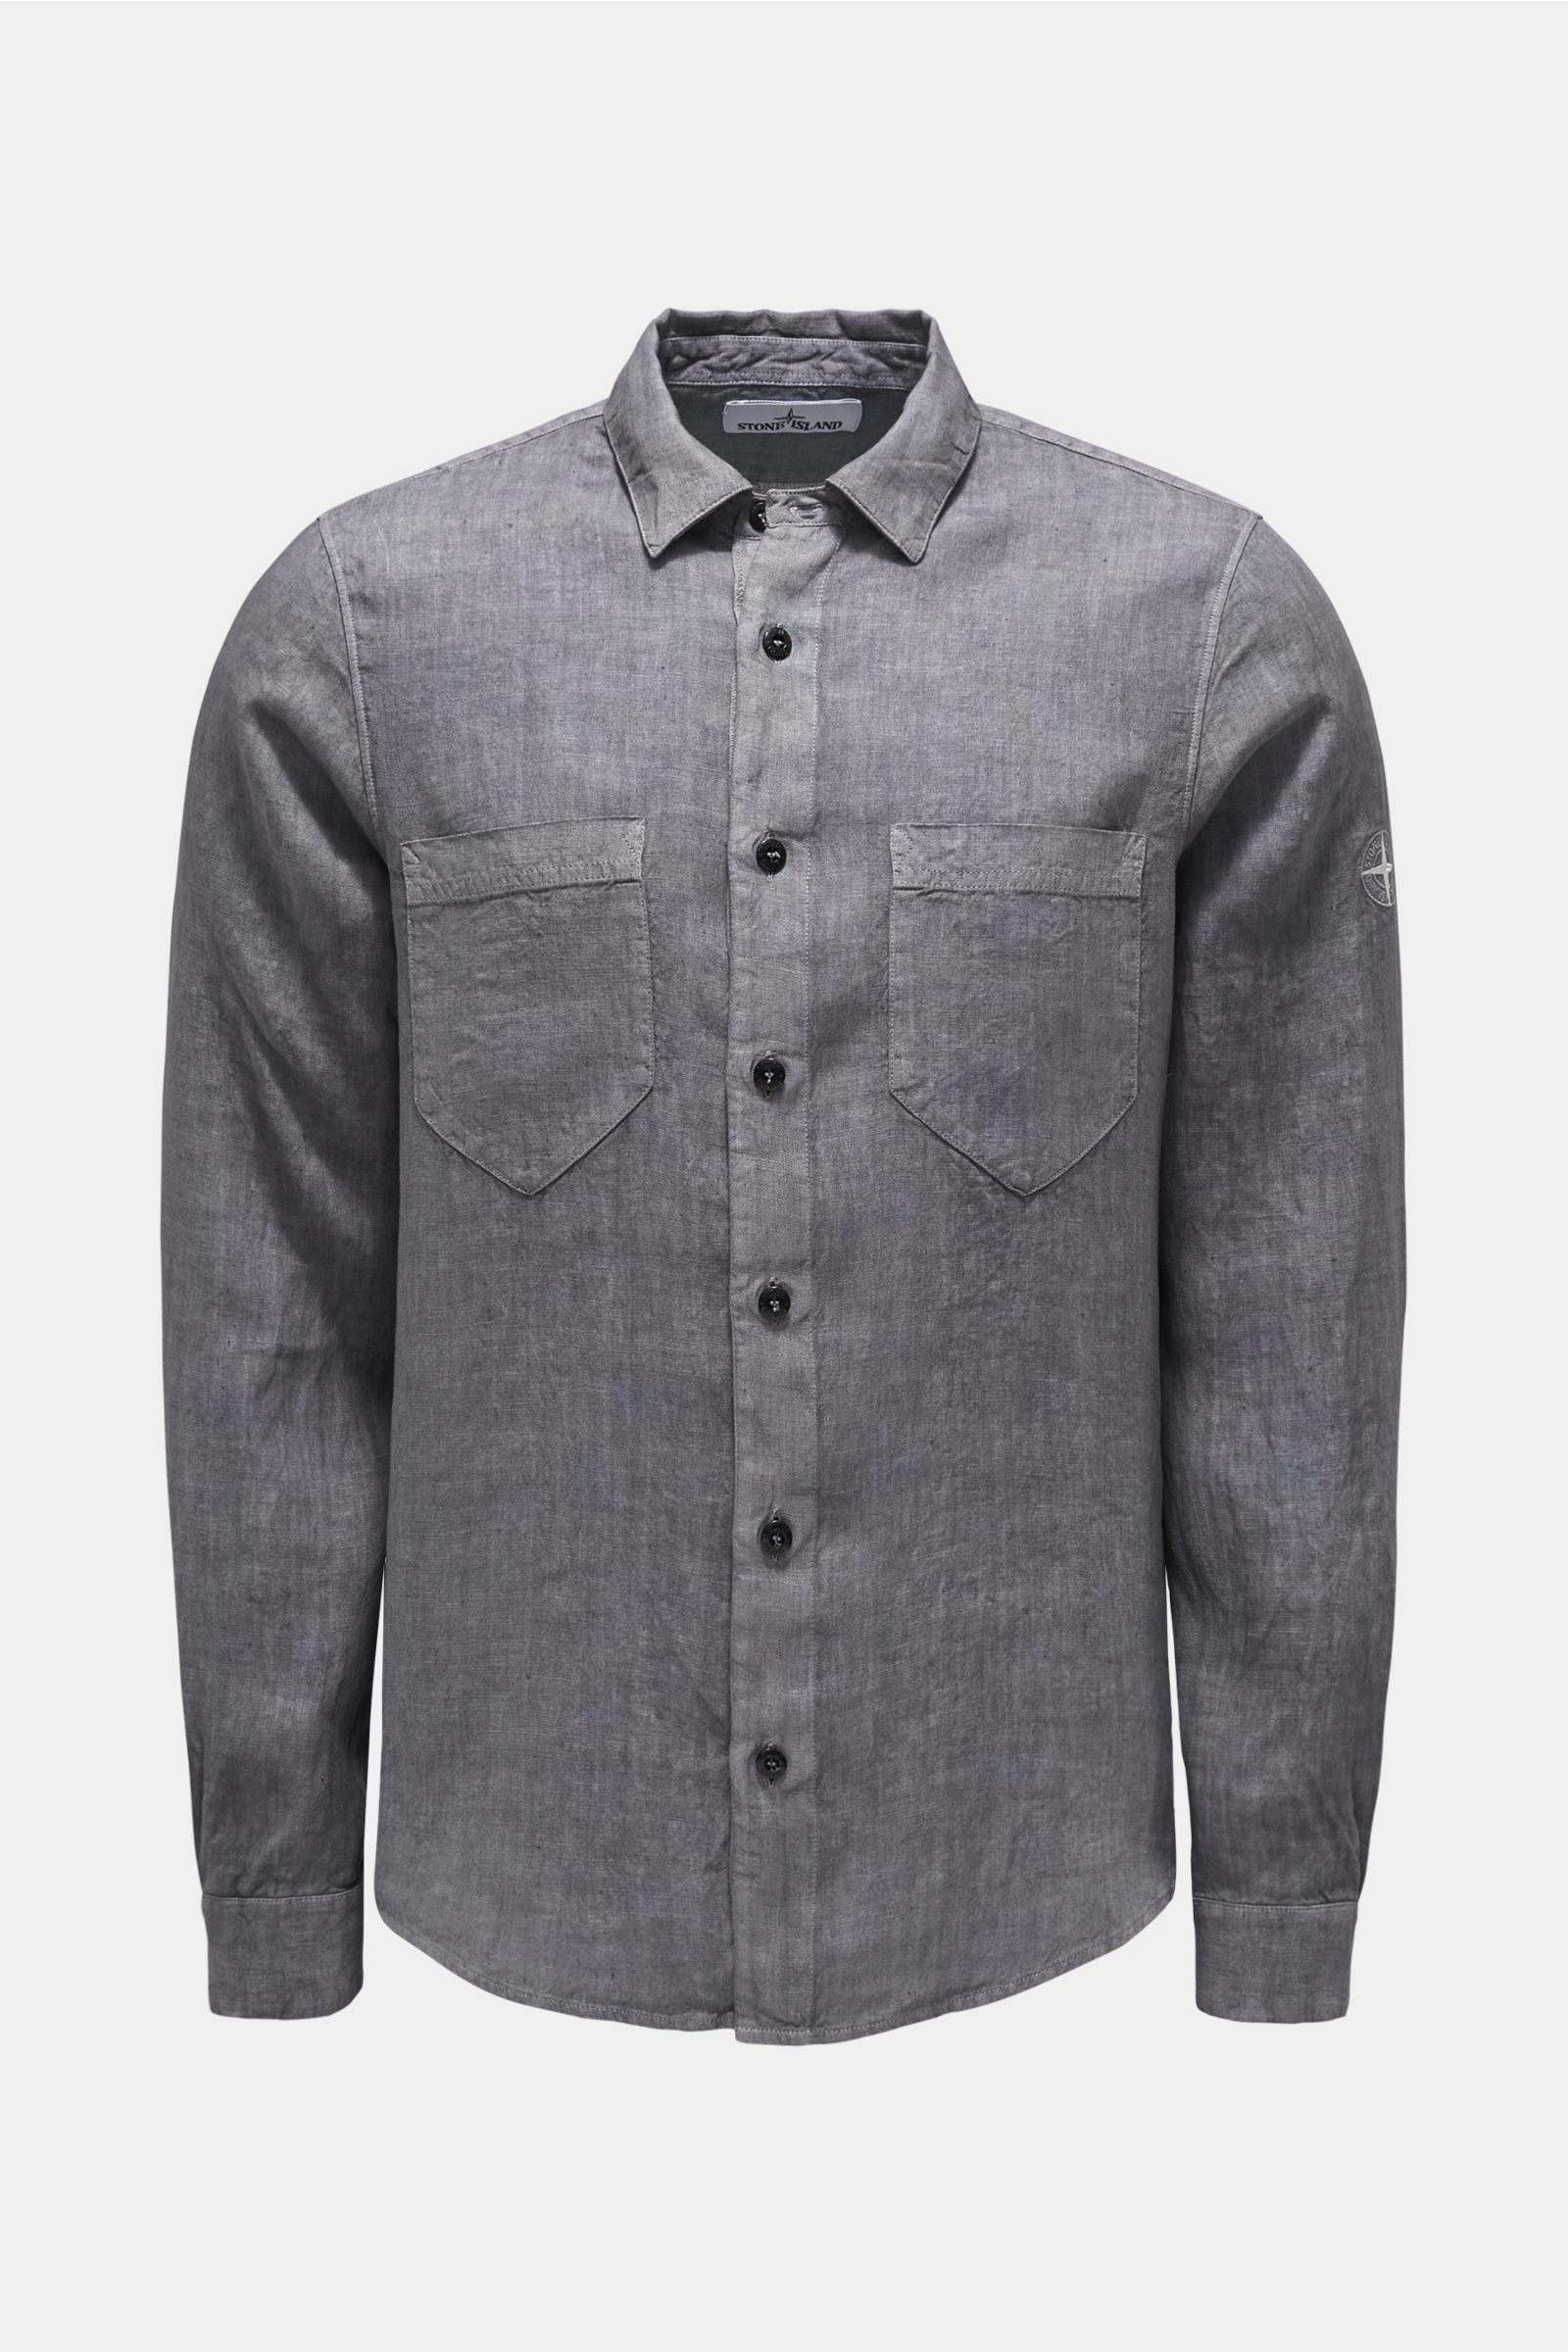 Linen shirt narrow collar dark grey